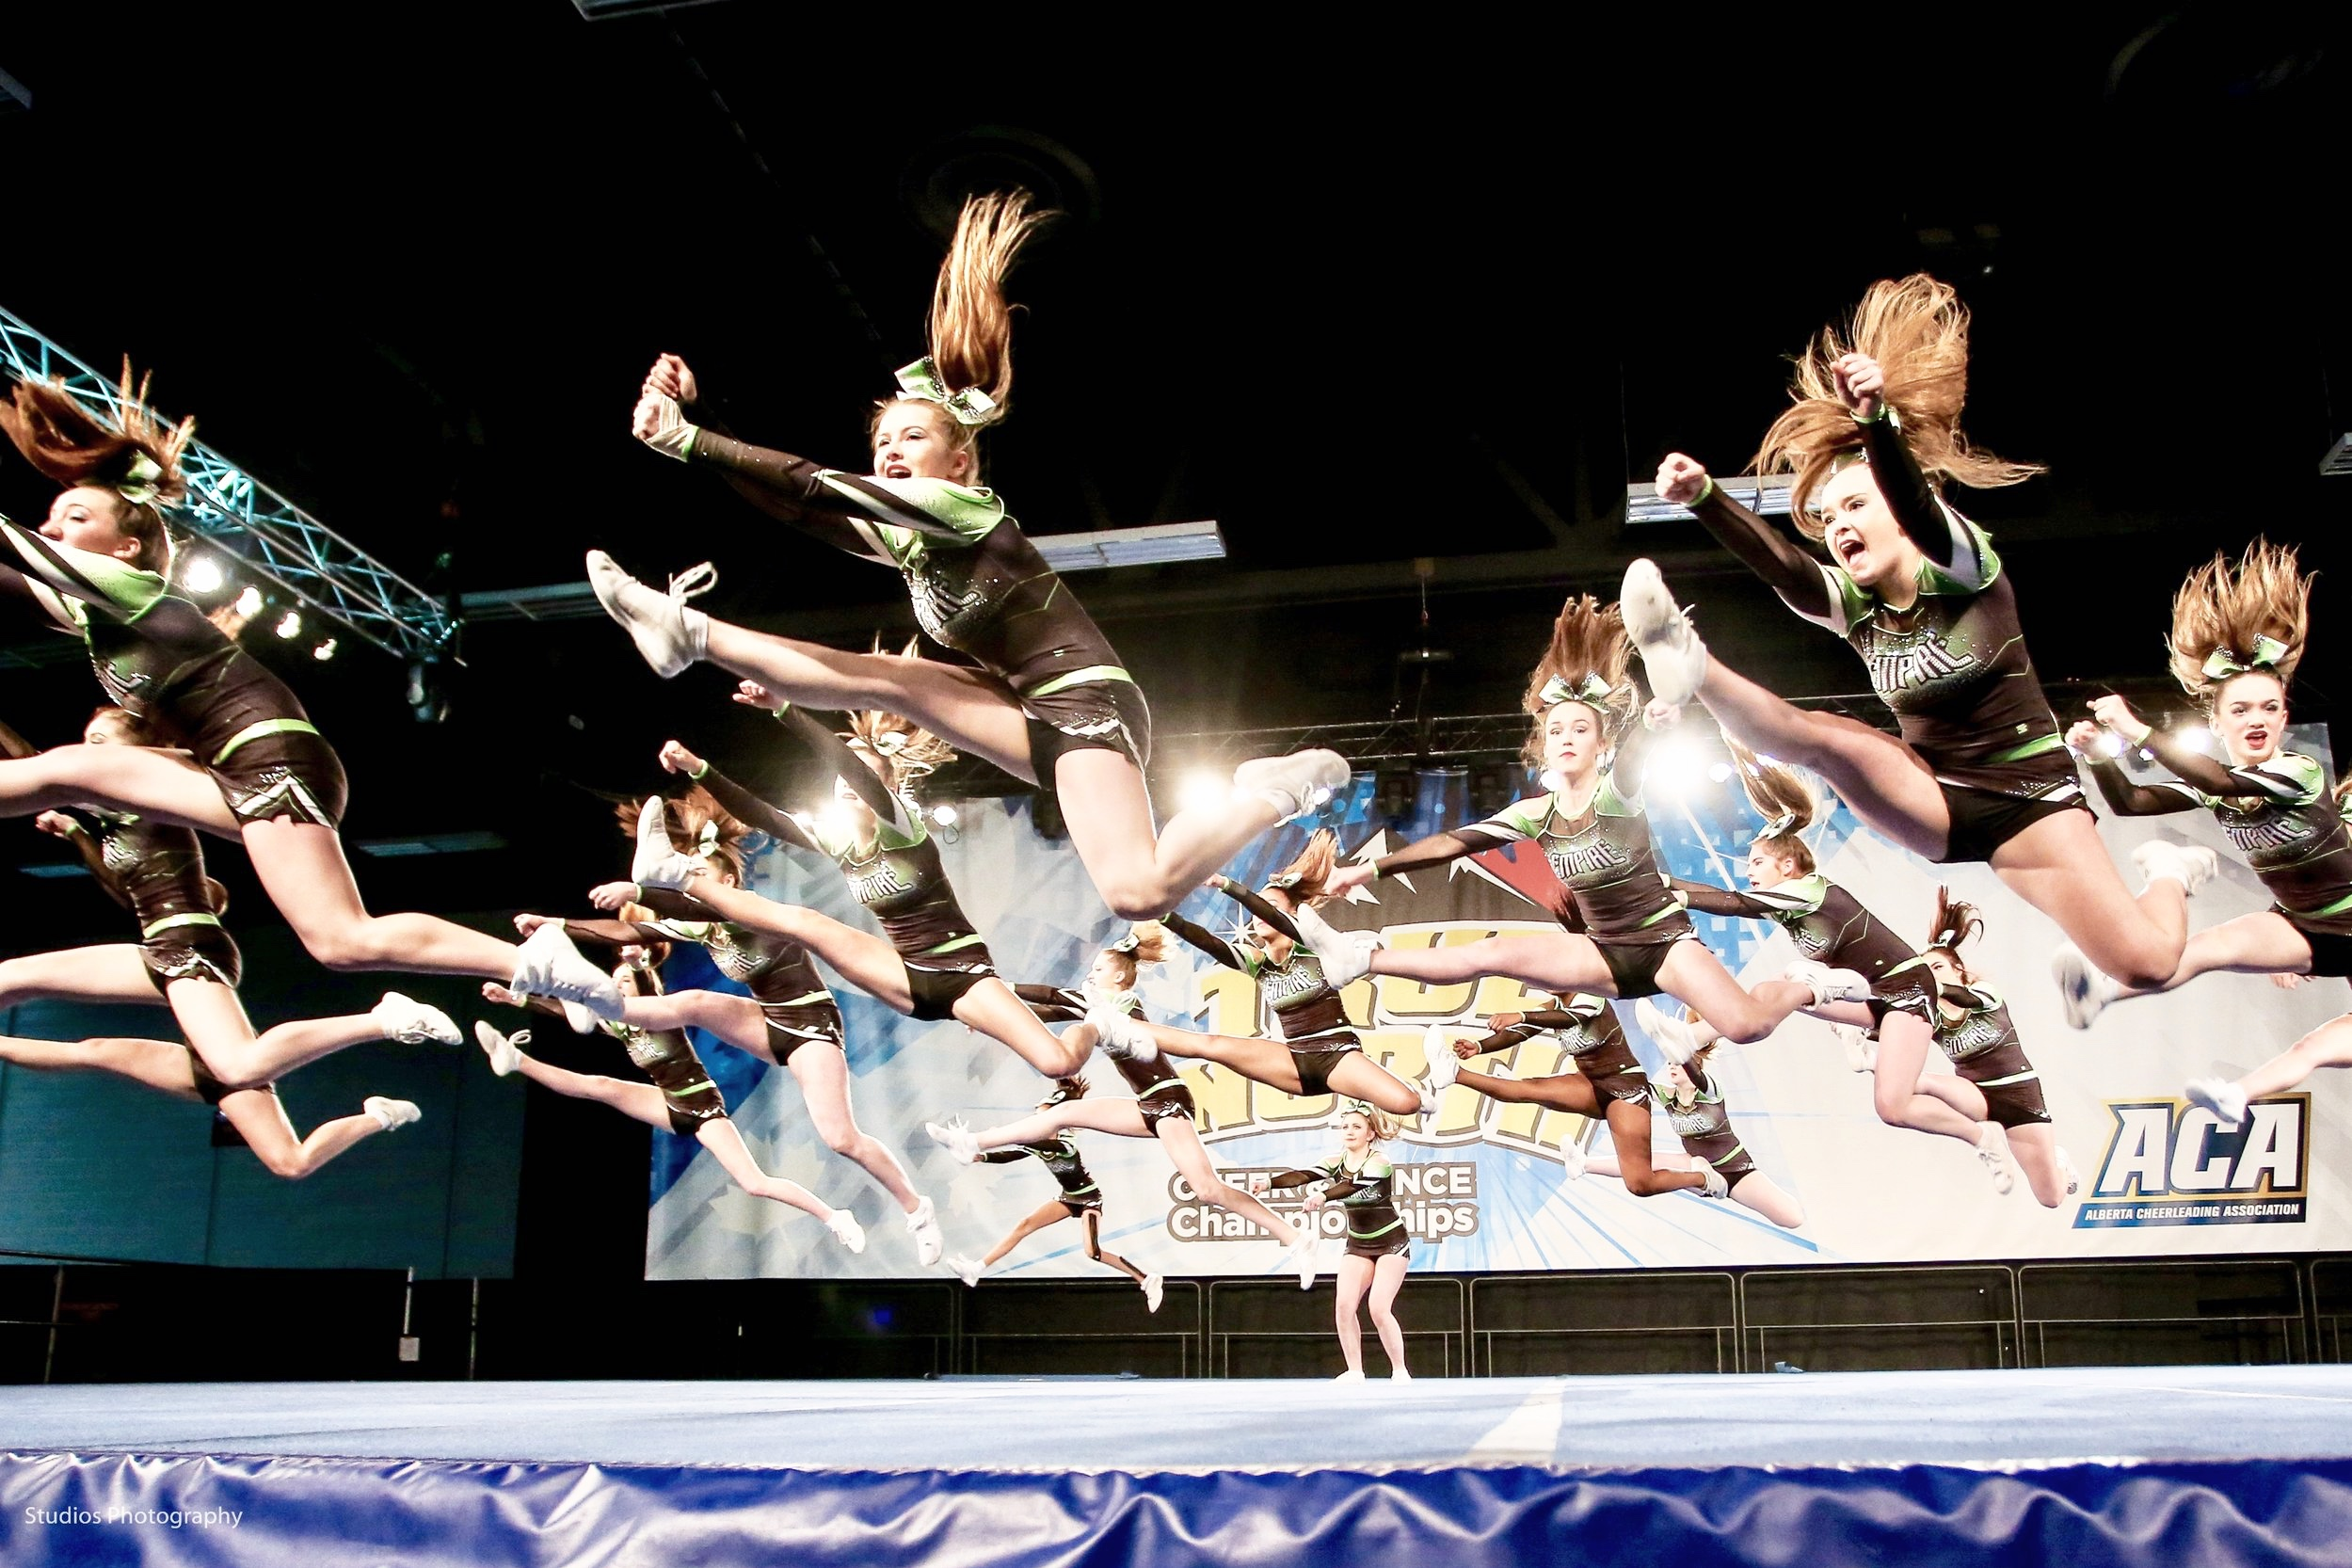 Our Vision… A Shared Ambition - To be the most progressive and innovative cheerleading organization.